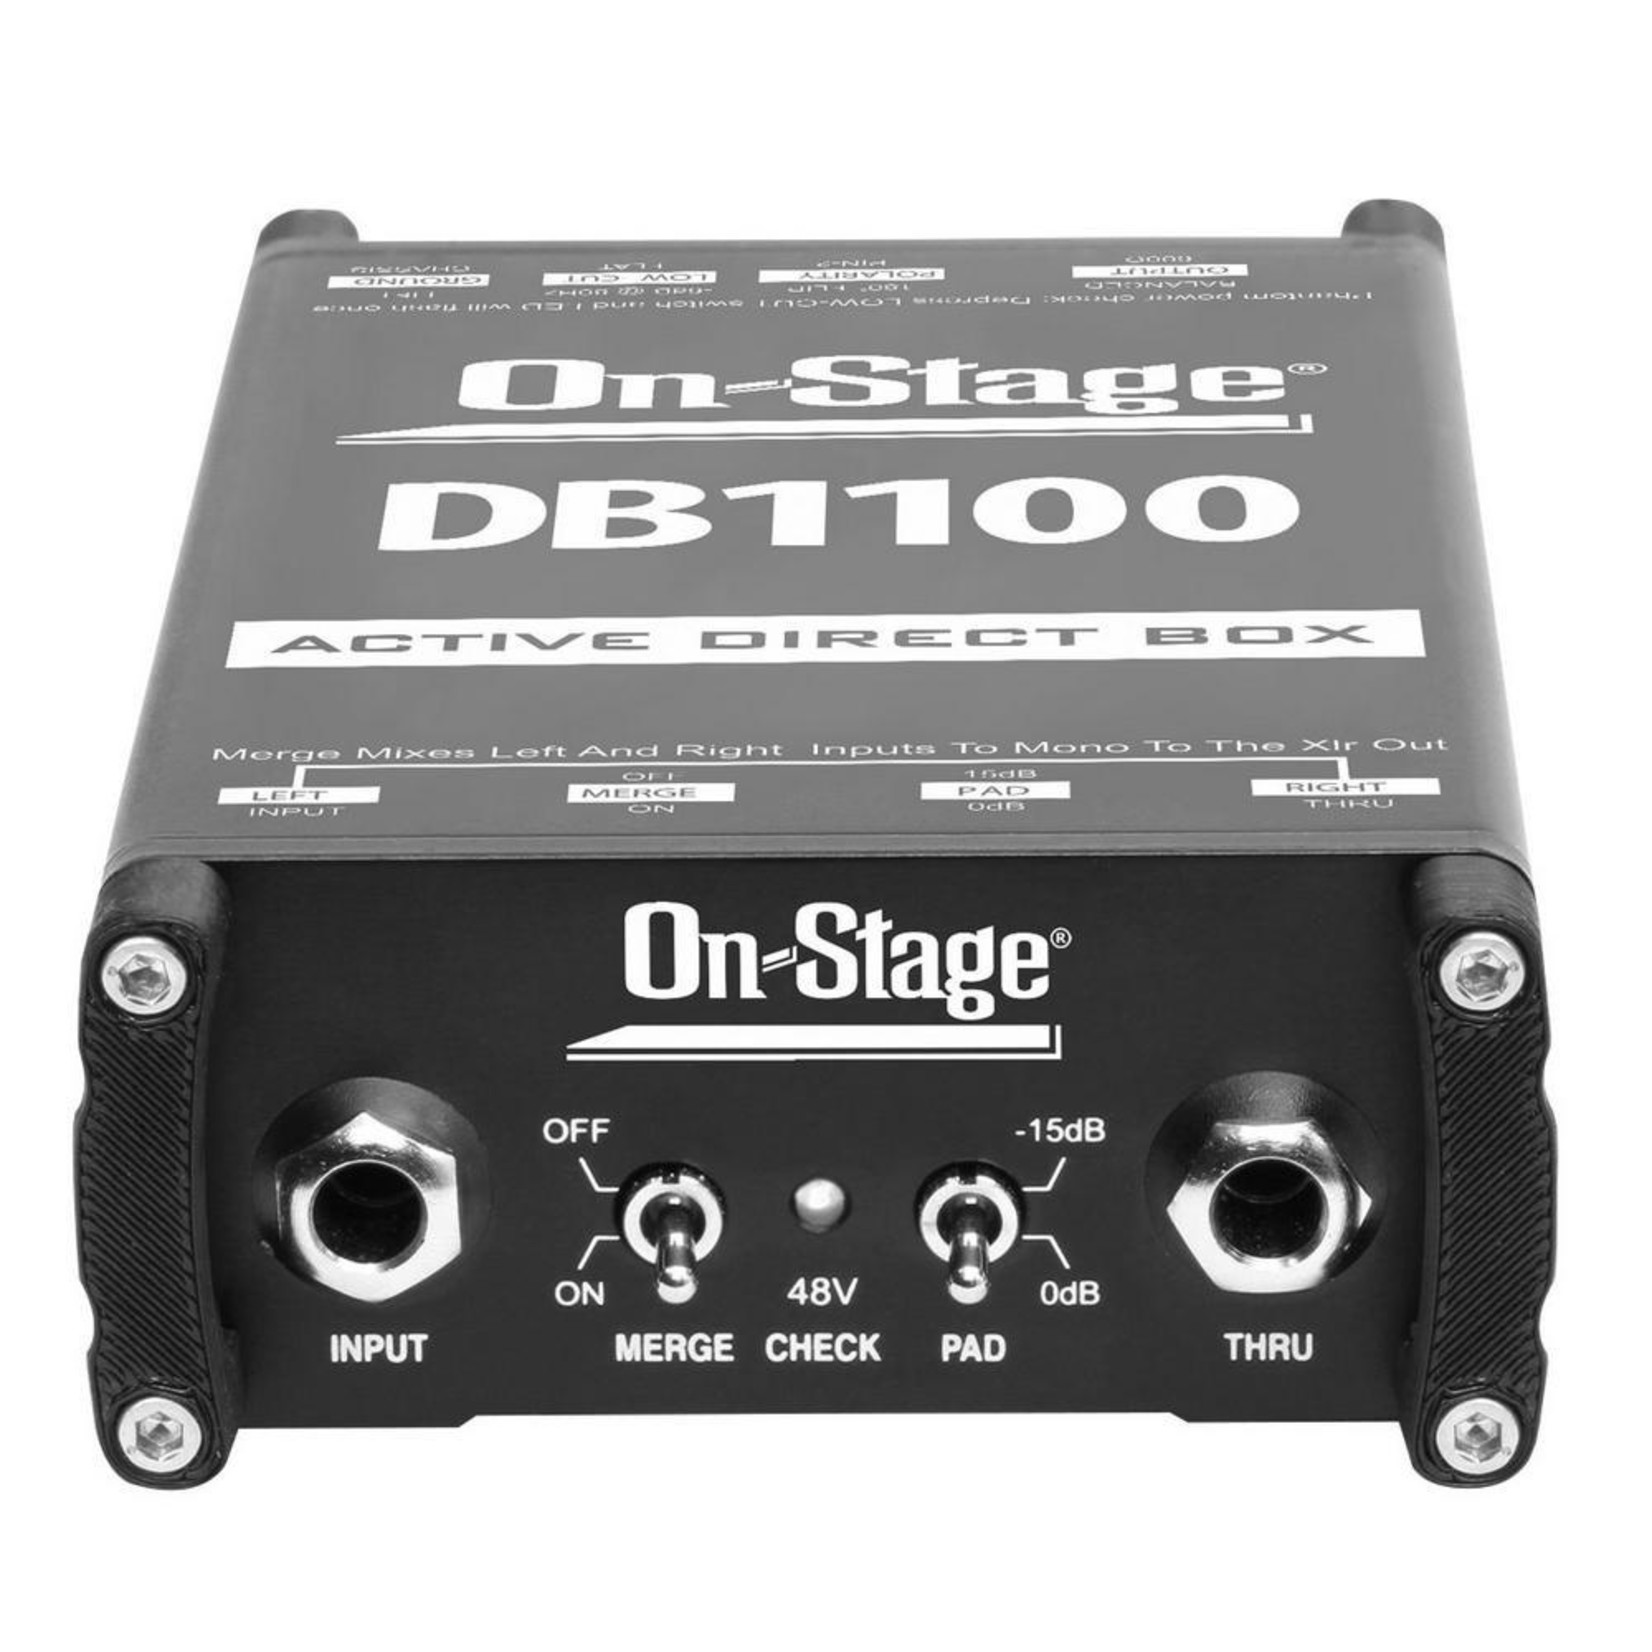 On-Stage On-Stage Active DI Box with Stereo-to-Mono Summing (DB1100)